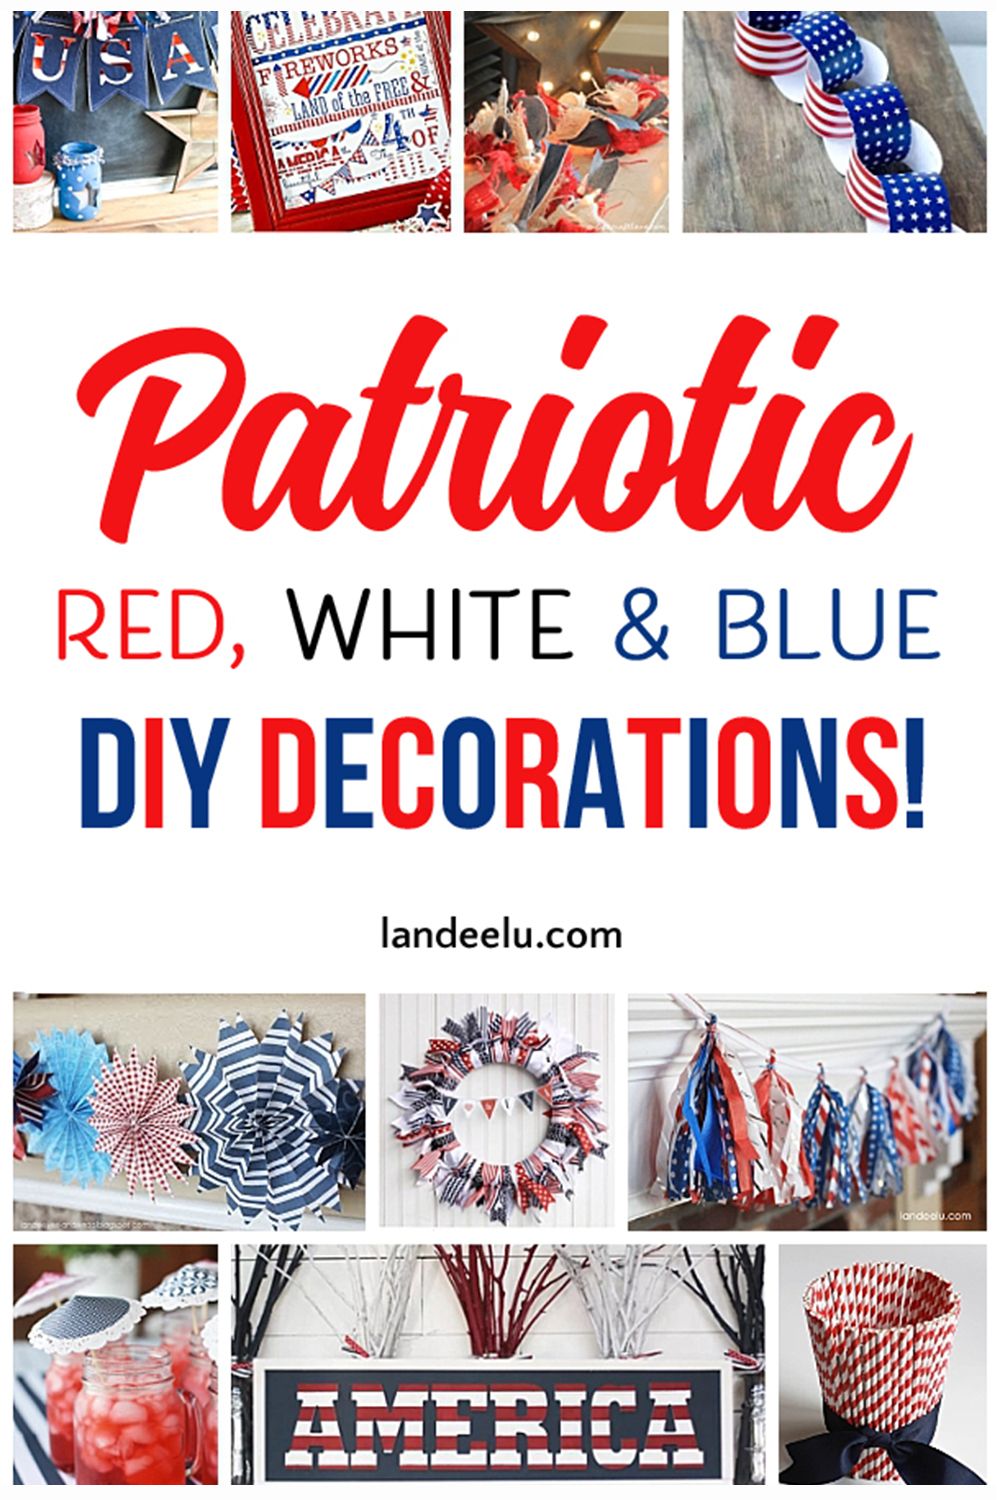 Awesome DIY red, white and blue decorations for 4th of July, Memorial Day, Veteran's Day or any day you want to celebrate America! #4thofjuly #independenceday #4thofjulydecorations #redwhiteandblue